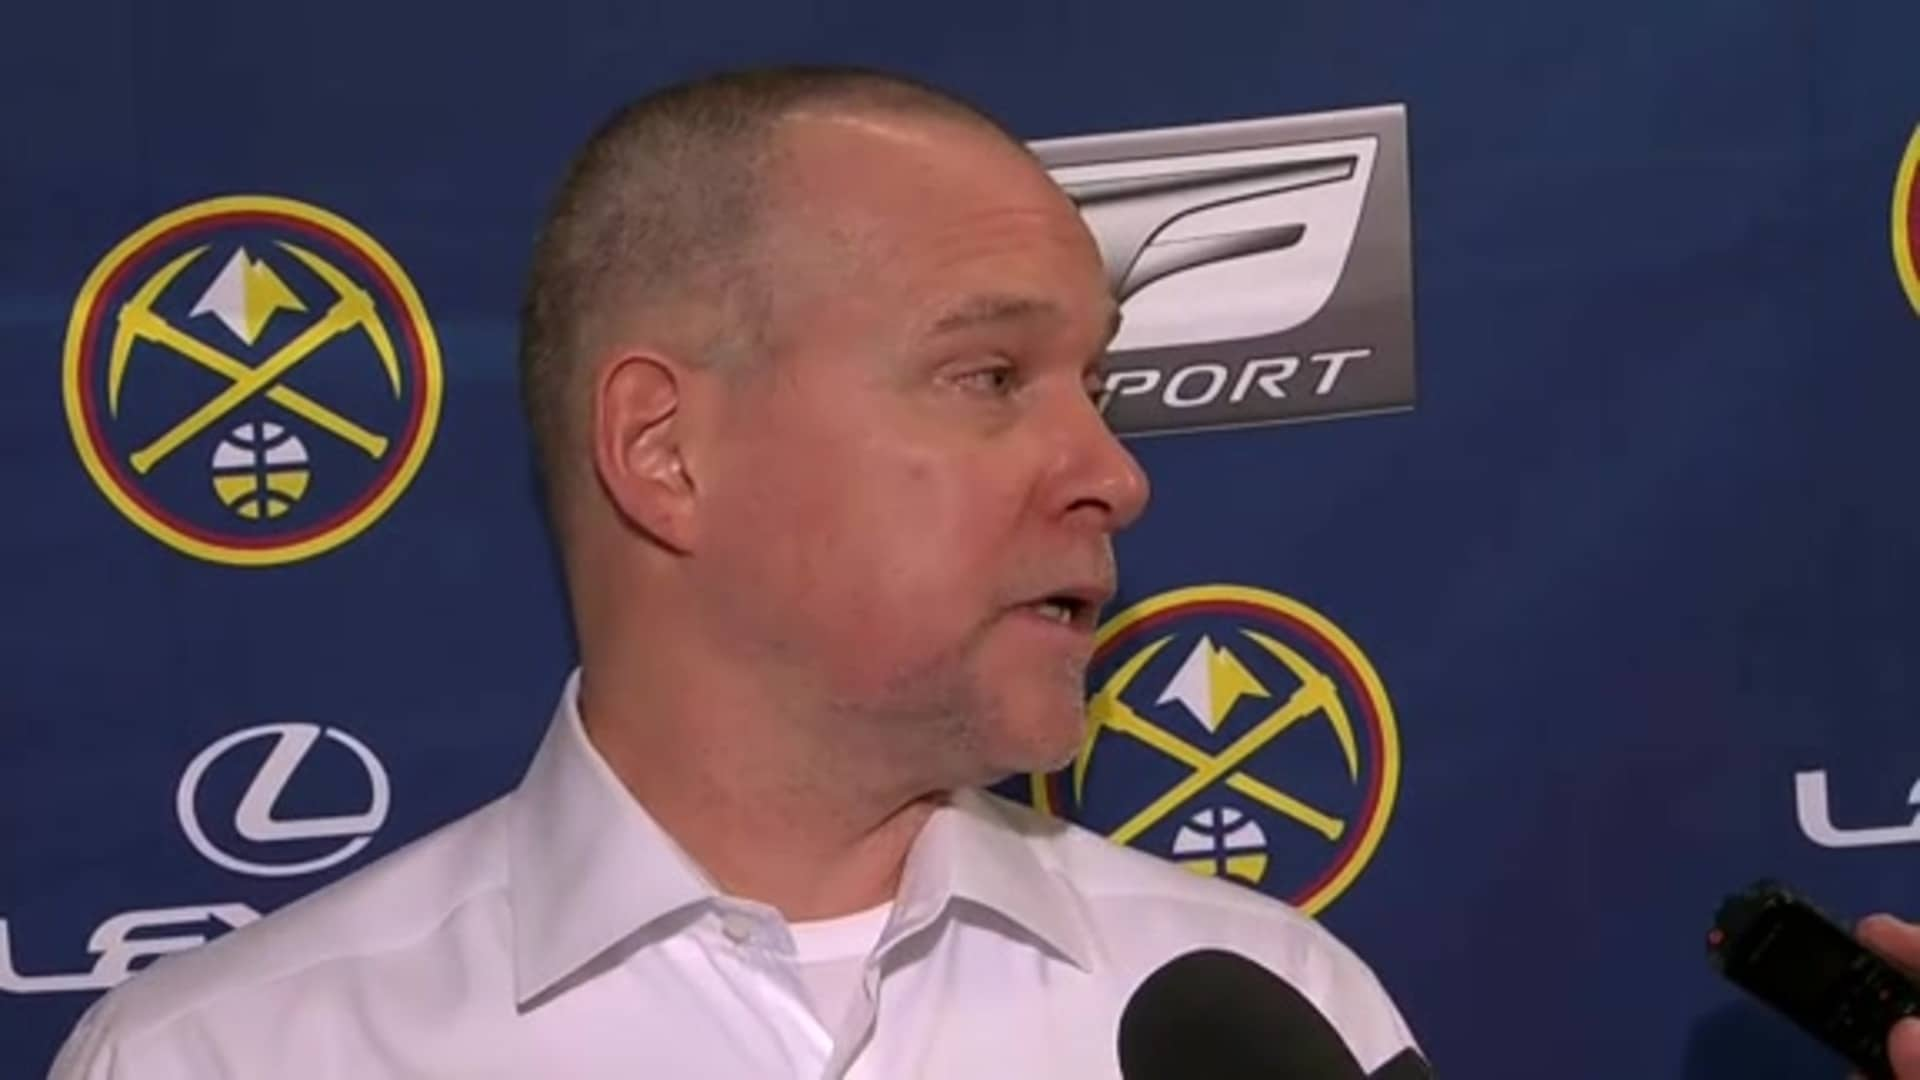 Coach Malone postgame comments after win vs. Mavs